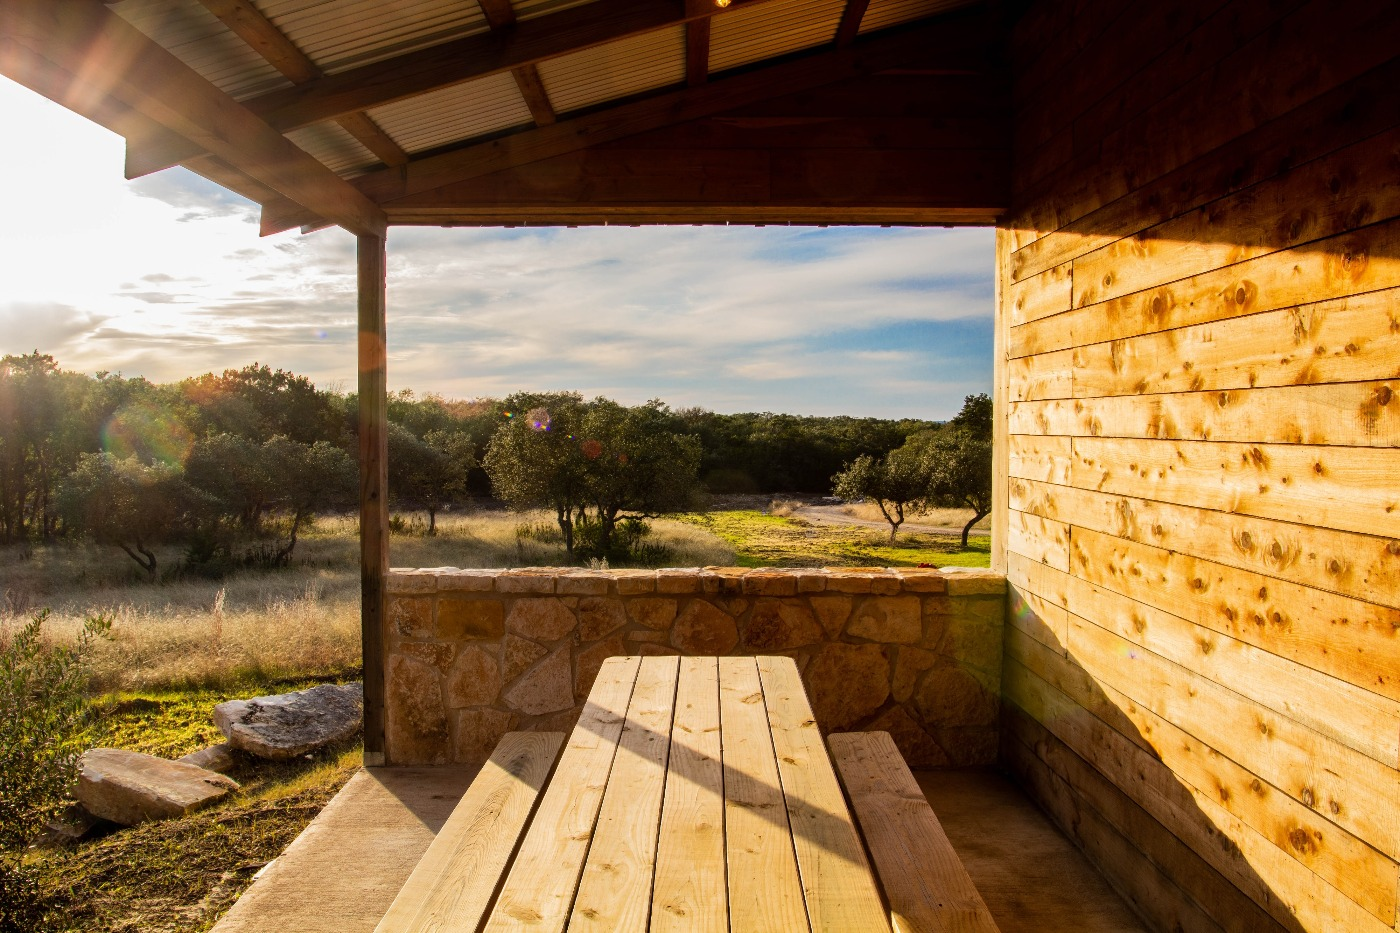 event center day2 F.jpg